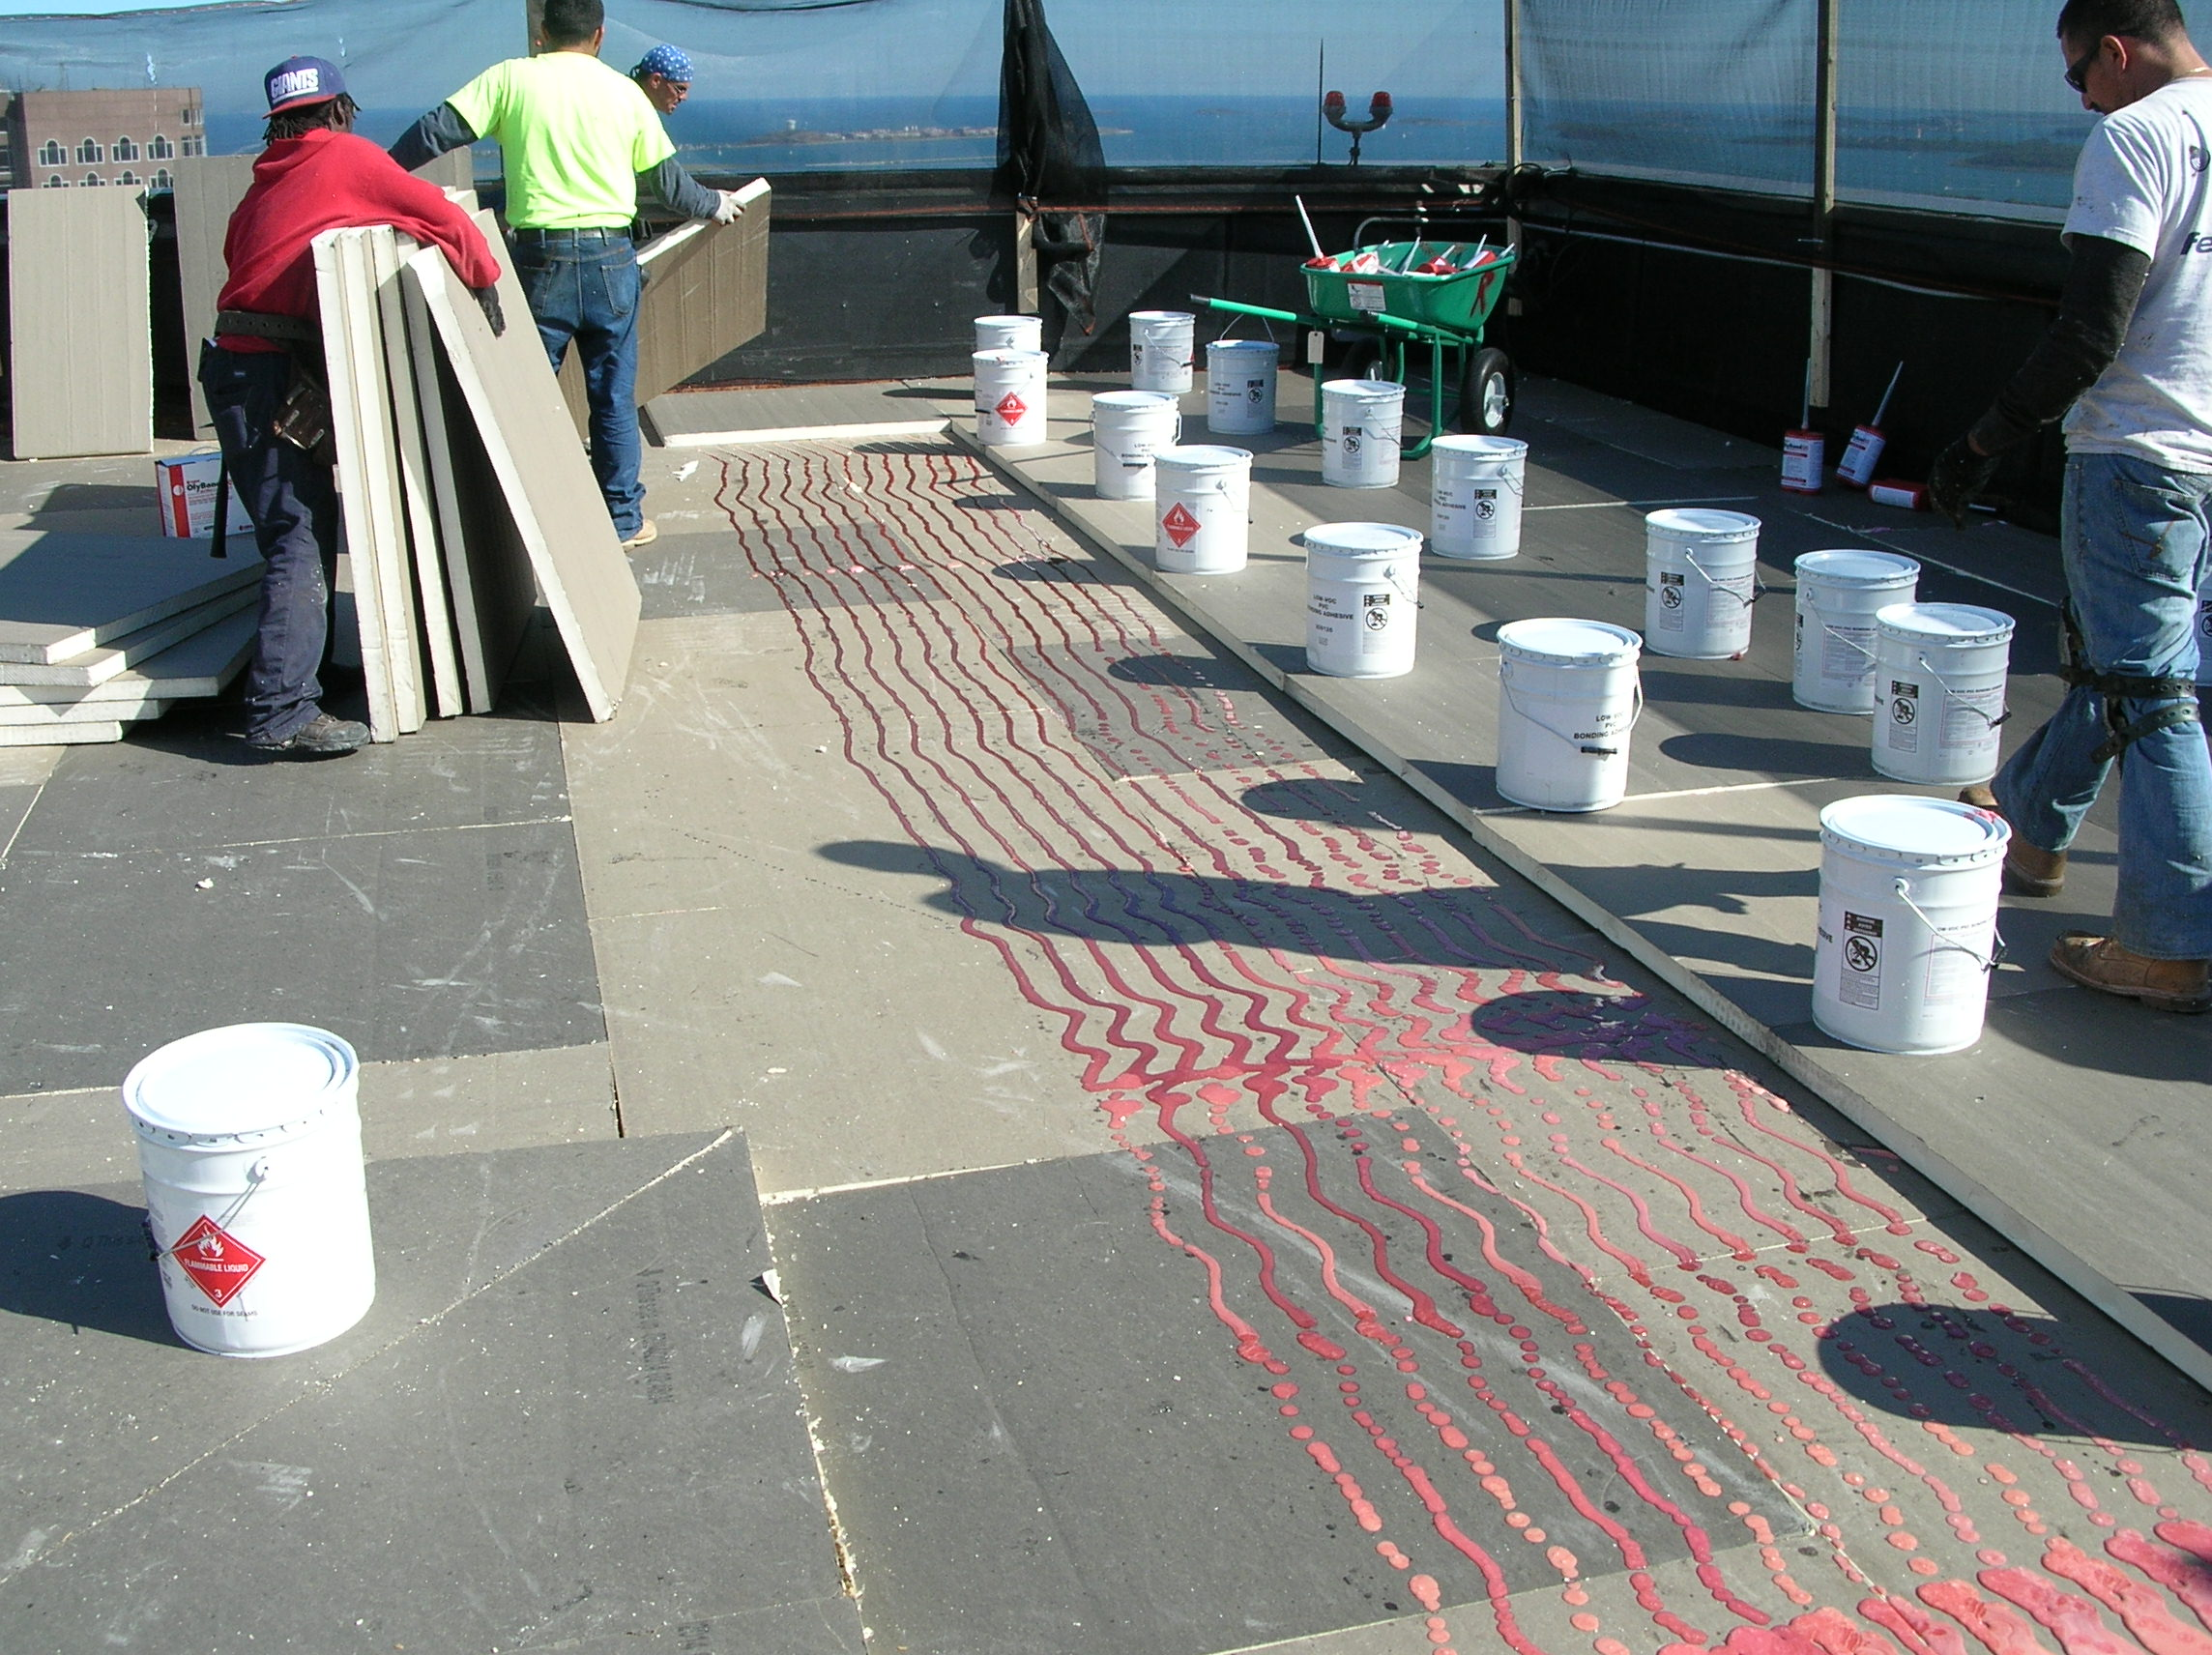 Installing polyisocyanurate insulation boards in adhesive during a roof installation.